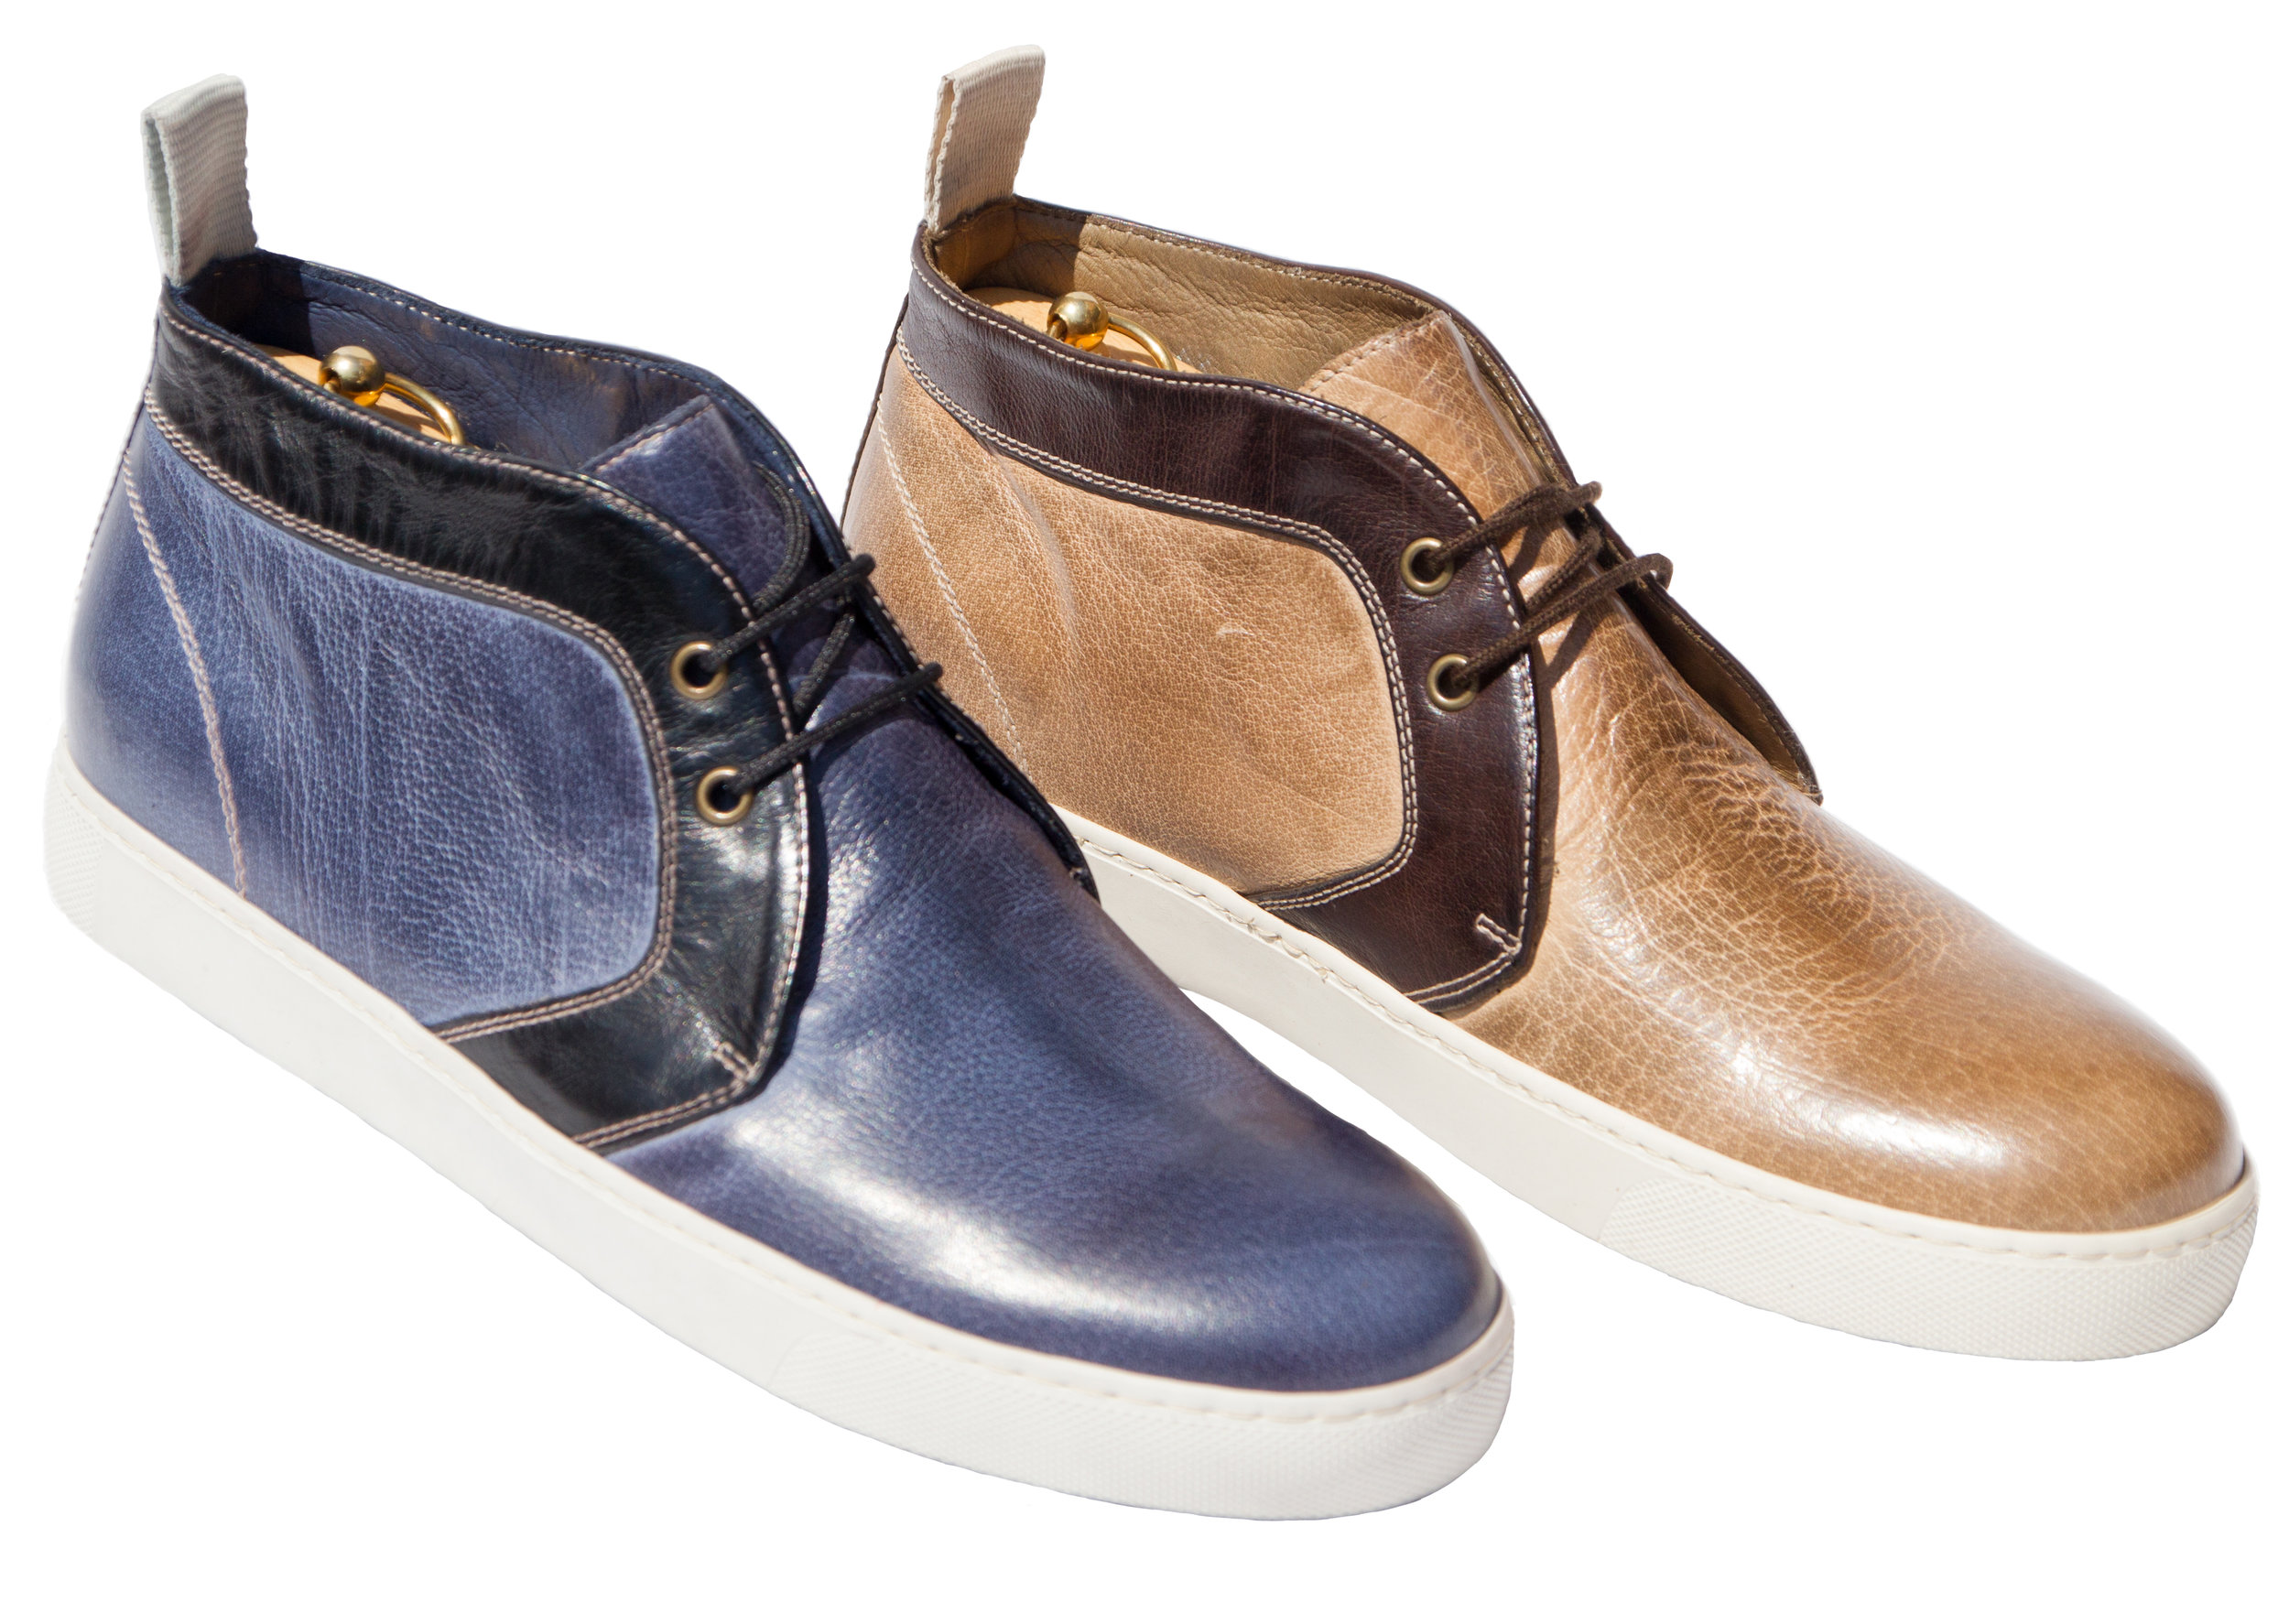 Style #3135: Denim Blue/Black, Taupe/Dark Brown  Dip-Dyed Buff Calf Chukka Boot   Sizes available: 7 to 18 US, full sizes only